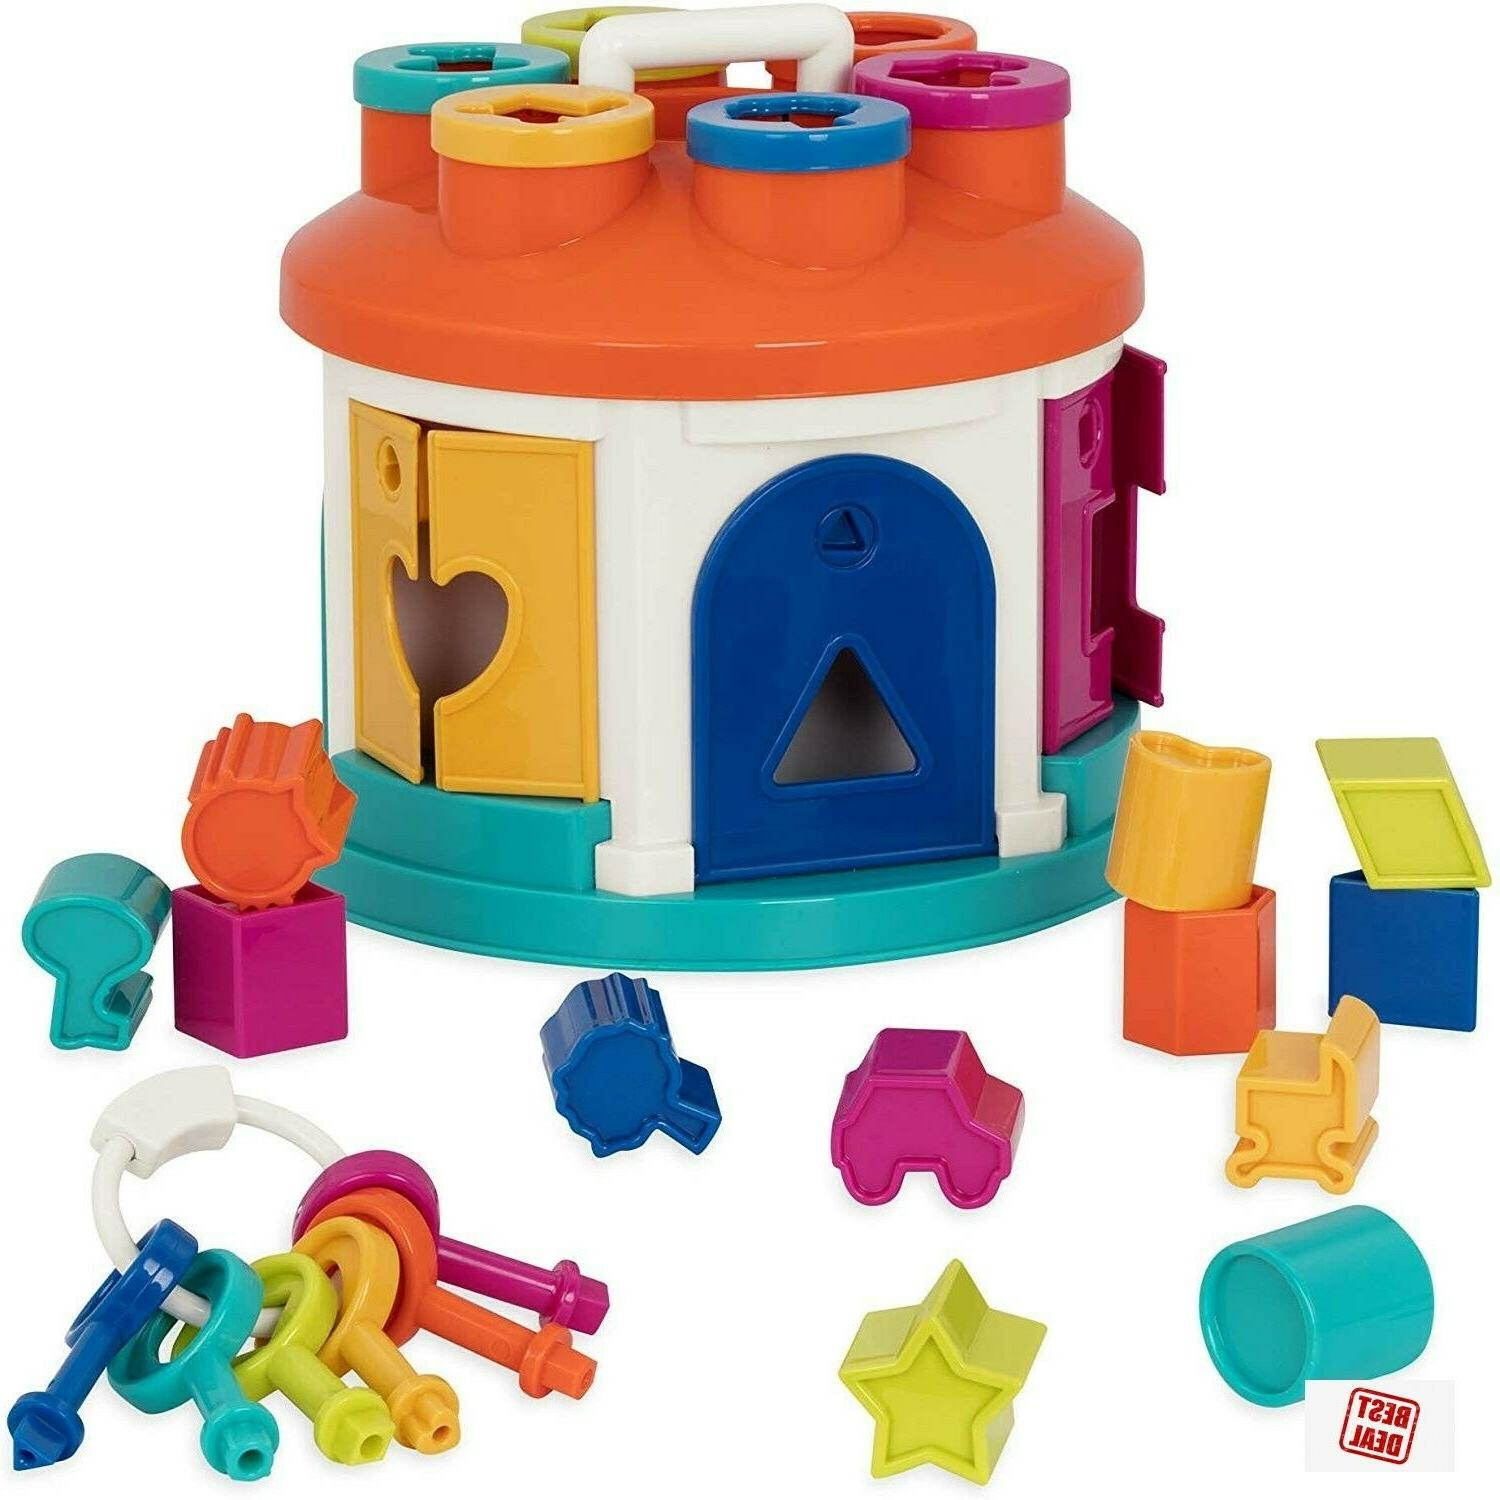 learning educational shape sorter toys for 1